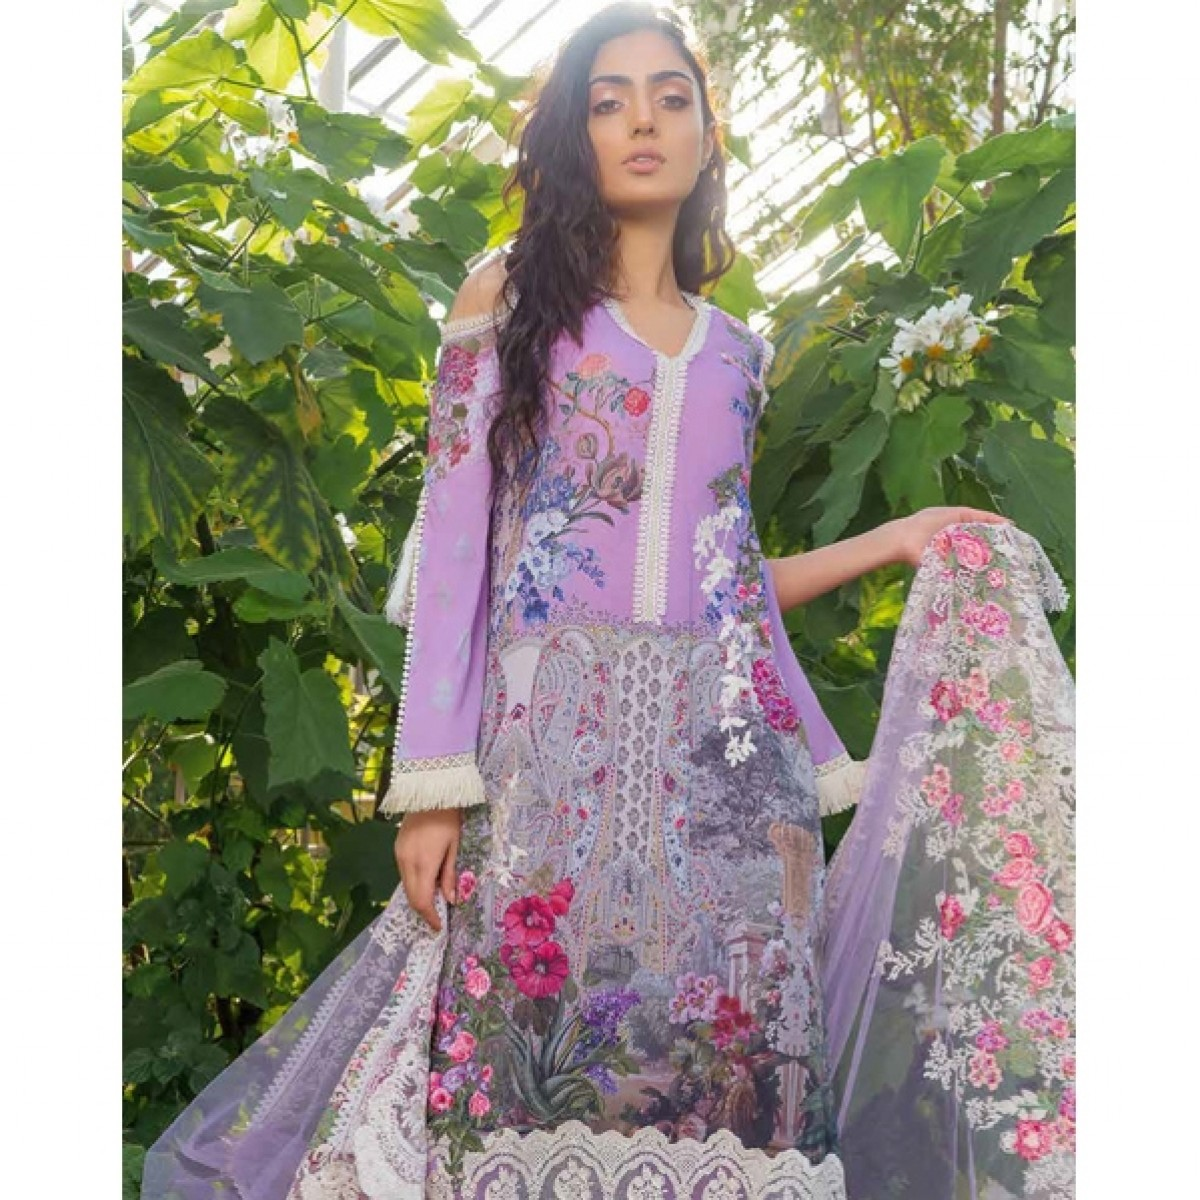 09d0557f5a Sobia Nazir Lawn Eid Collection 2019 3 Piece Price in Pakistan   Buy Sobia  Nazir Lawn Eid Collection 2019 3 Piece (SNL19-07A)   iShopping.pk